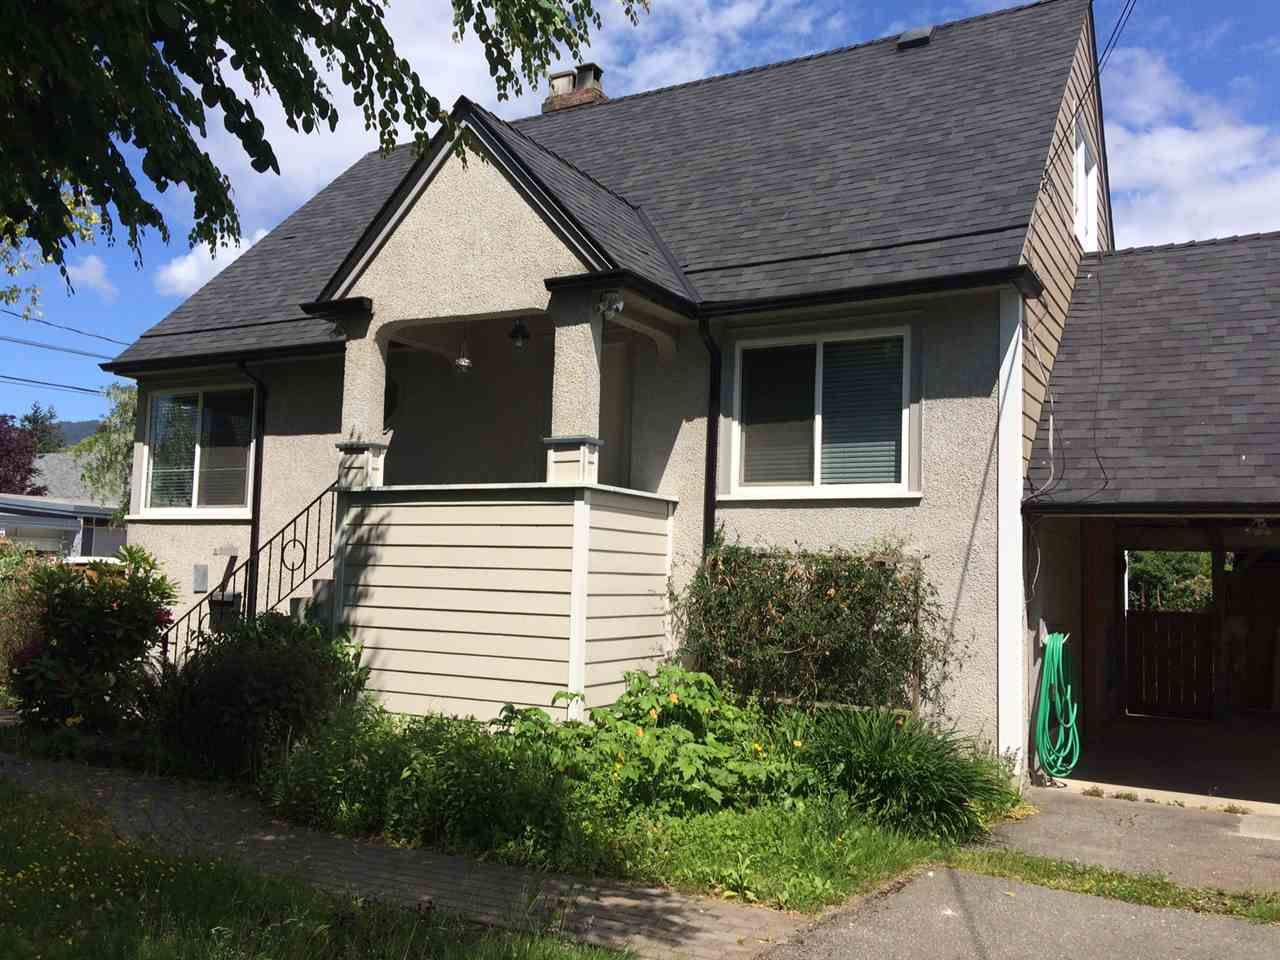 Main Photo: 1295 DUCHESS Avenue in West Vancouver: Ambleside House for sale : MLS®# R2278360